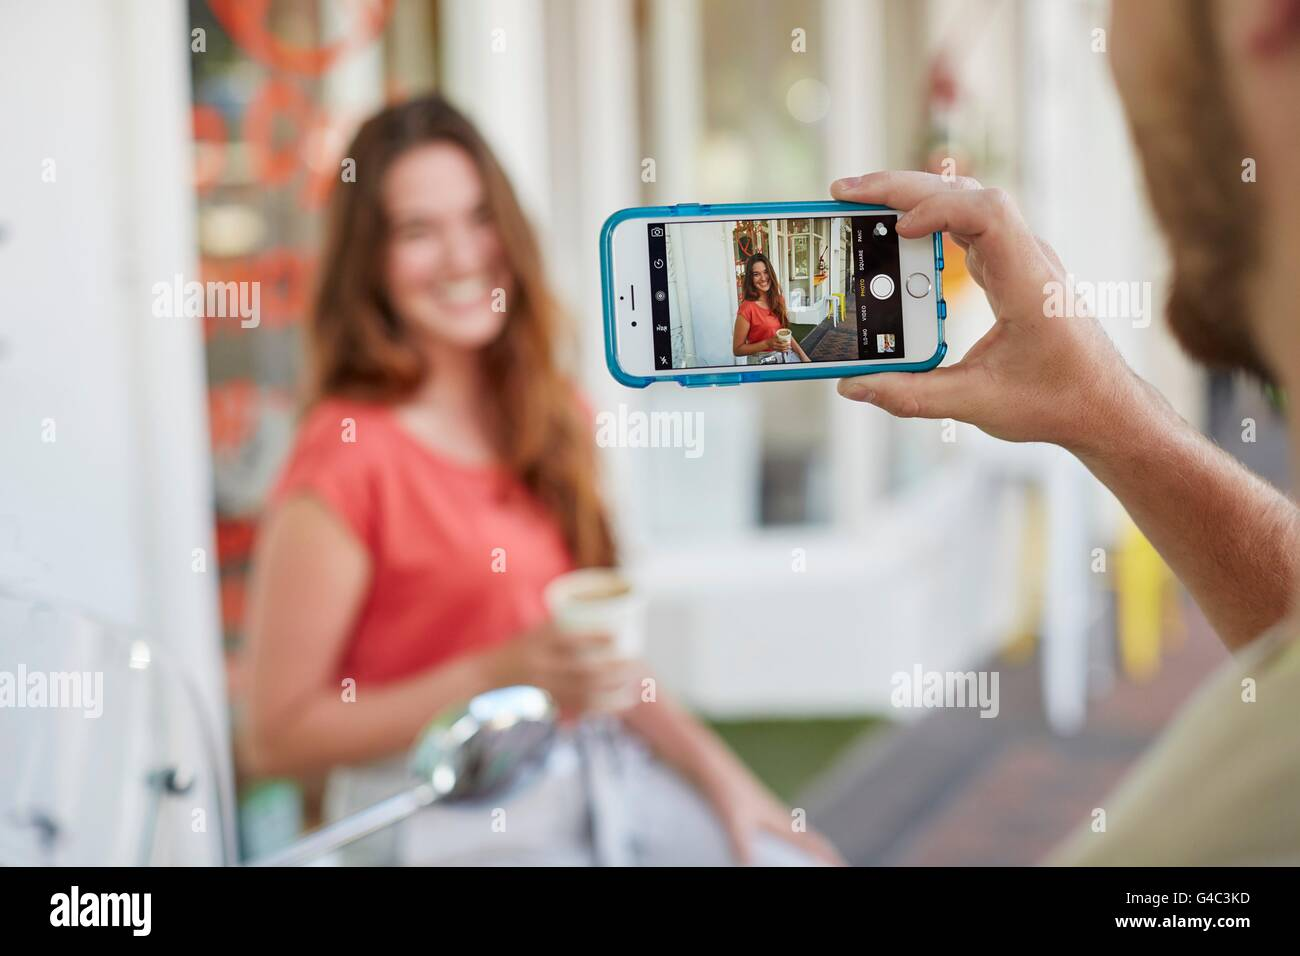 MODEL RELEASED. Person taking photo of young woman with smartphone. - Stock Image